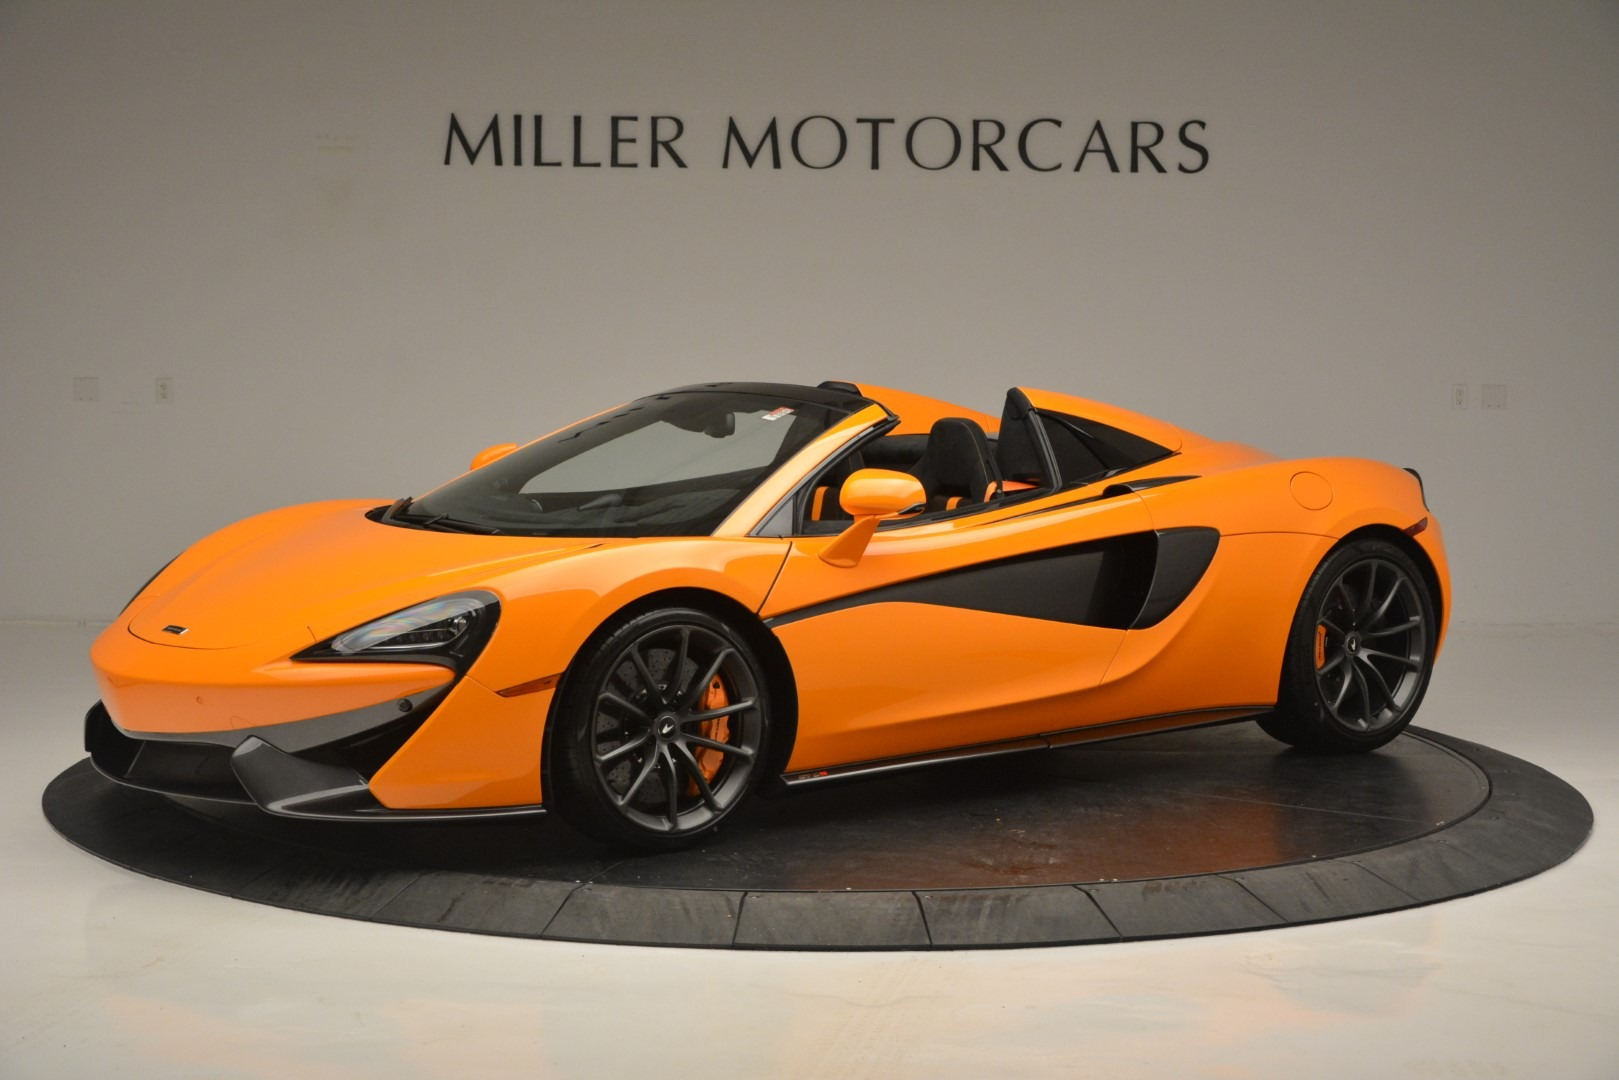 Used 2019 McLaren 570S Spider for sale Sold at Bugatti of Greenwich in Greenwich CT 06830 1